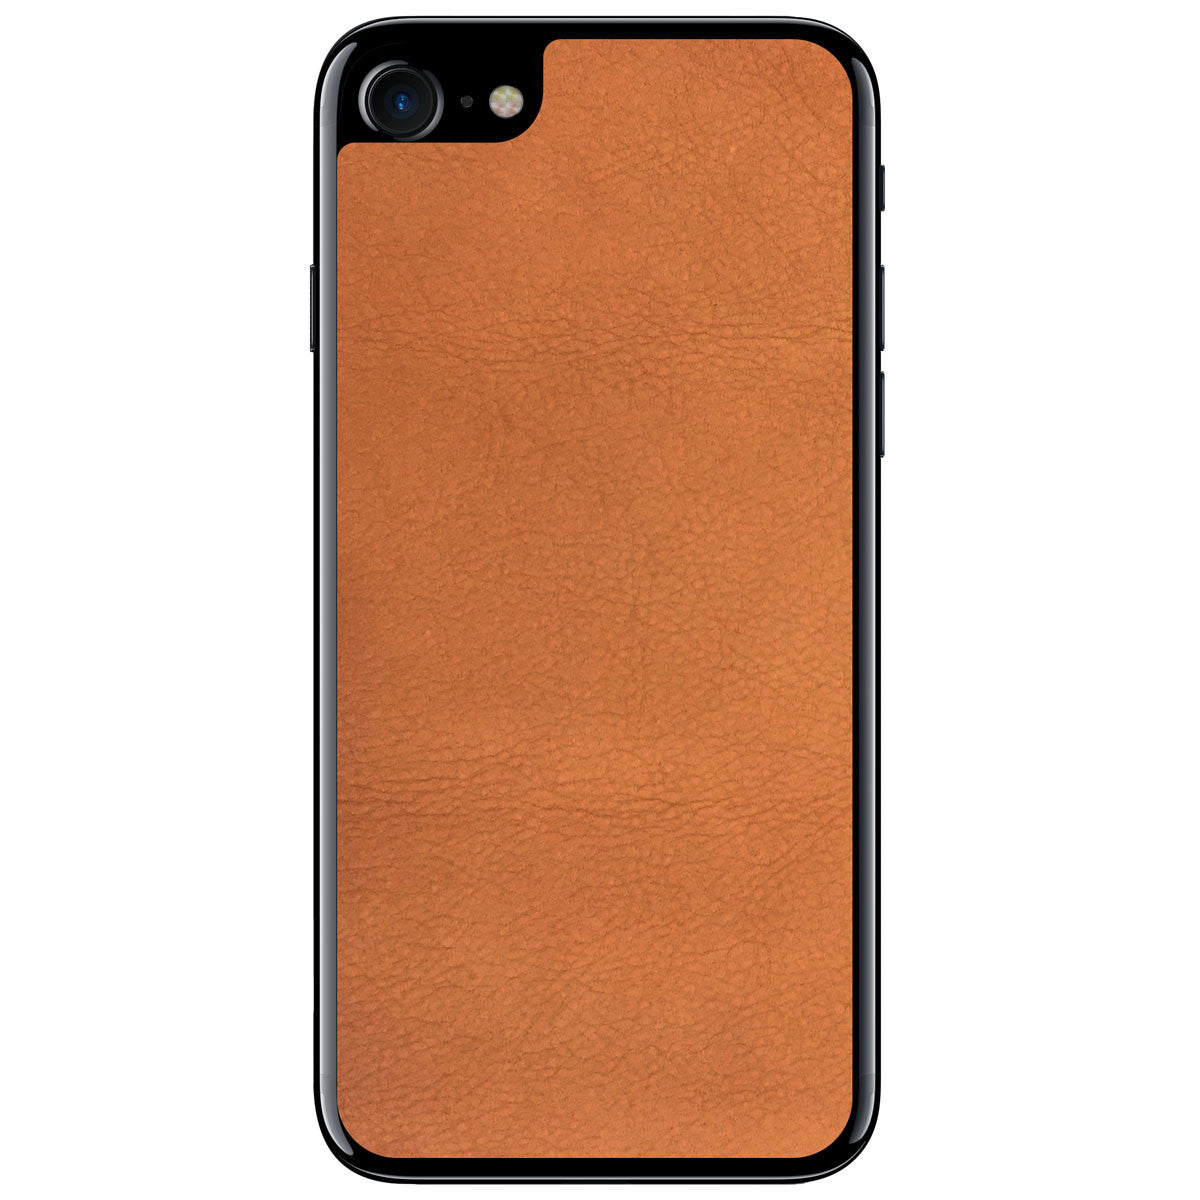 Dark Tan iPhone 7 Leather Skin